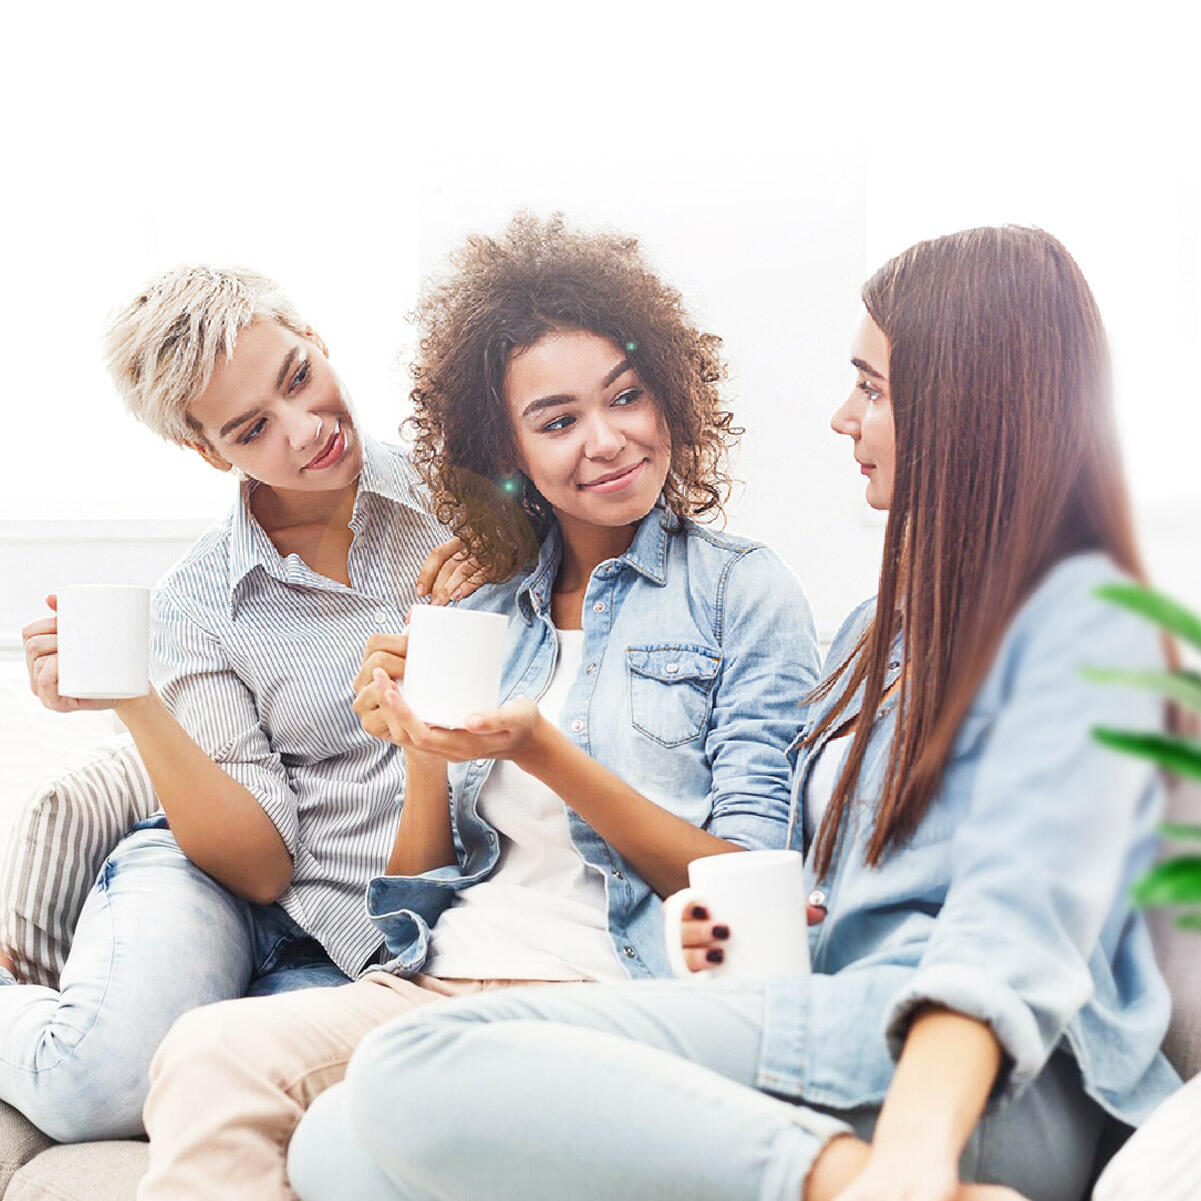 A1 referral program image of 3 ladies enjoying coffee on a couch